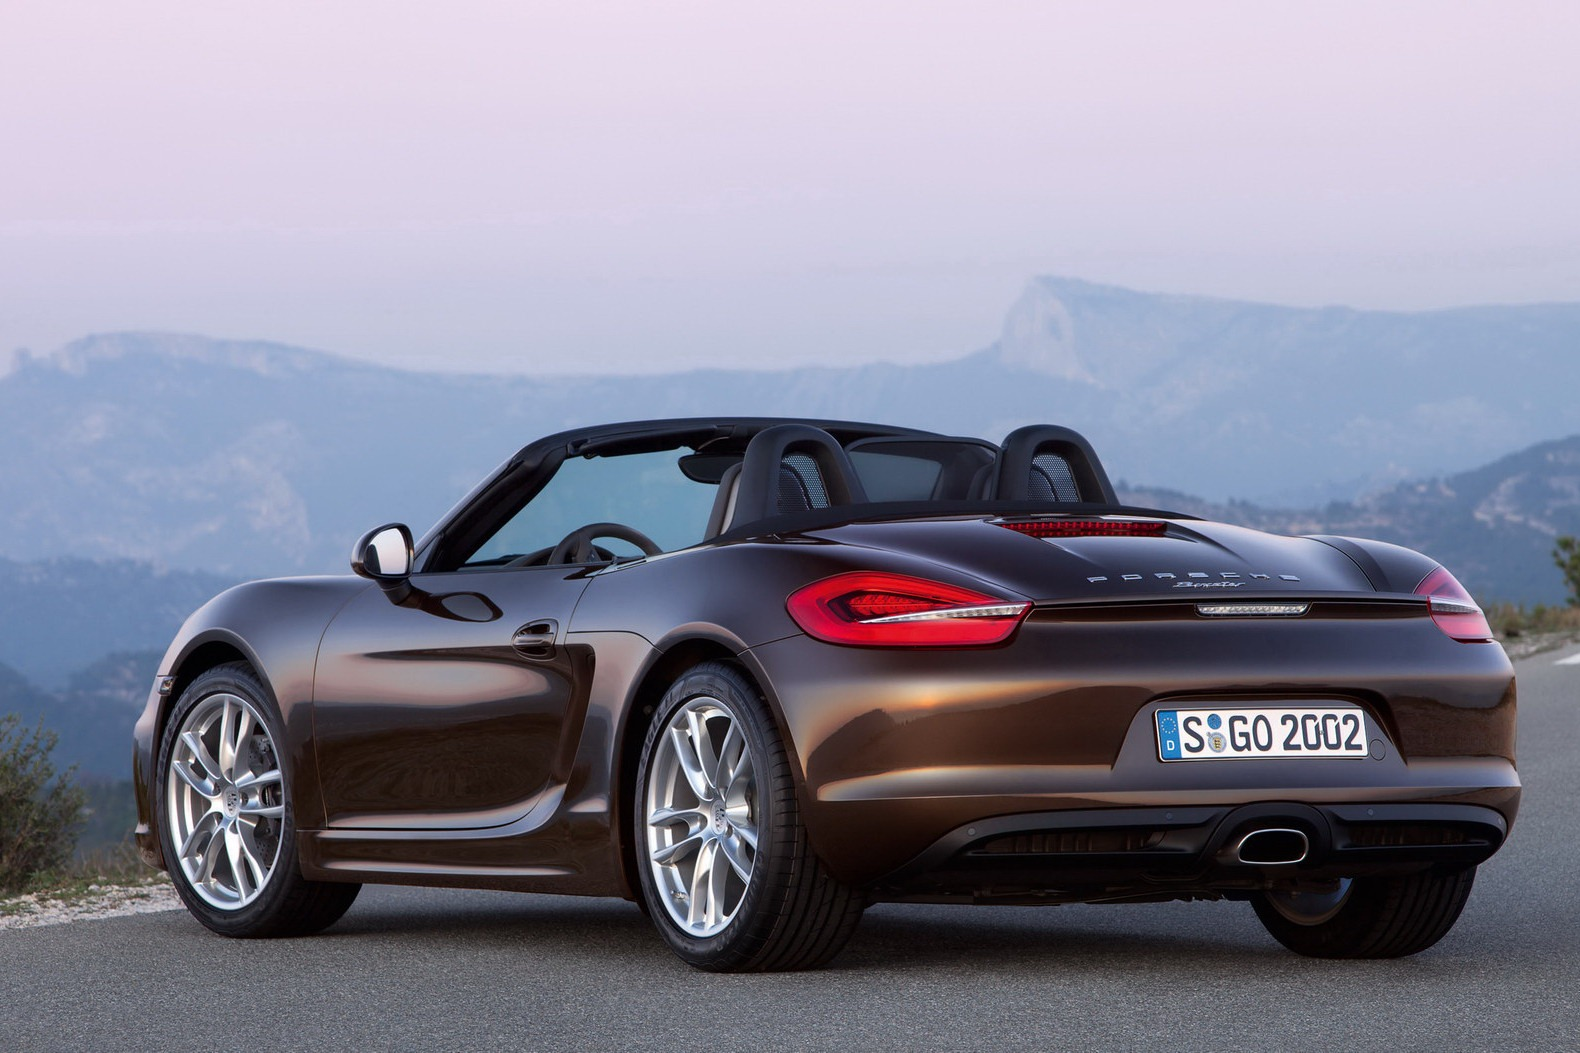 2013 Porsche Boxster rated at 22/32 MPG - Autoblog